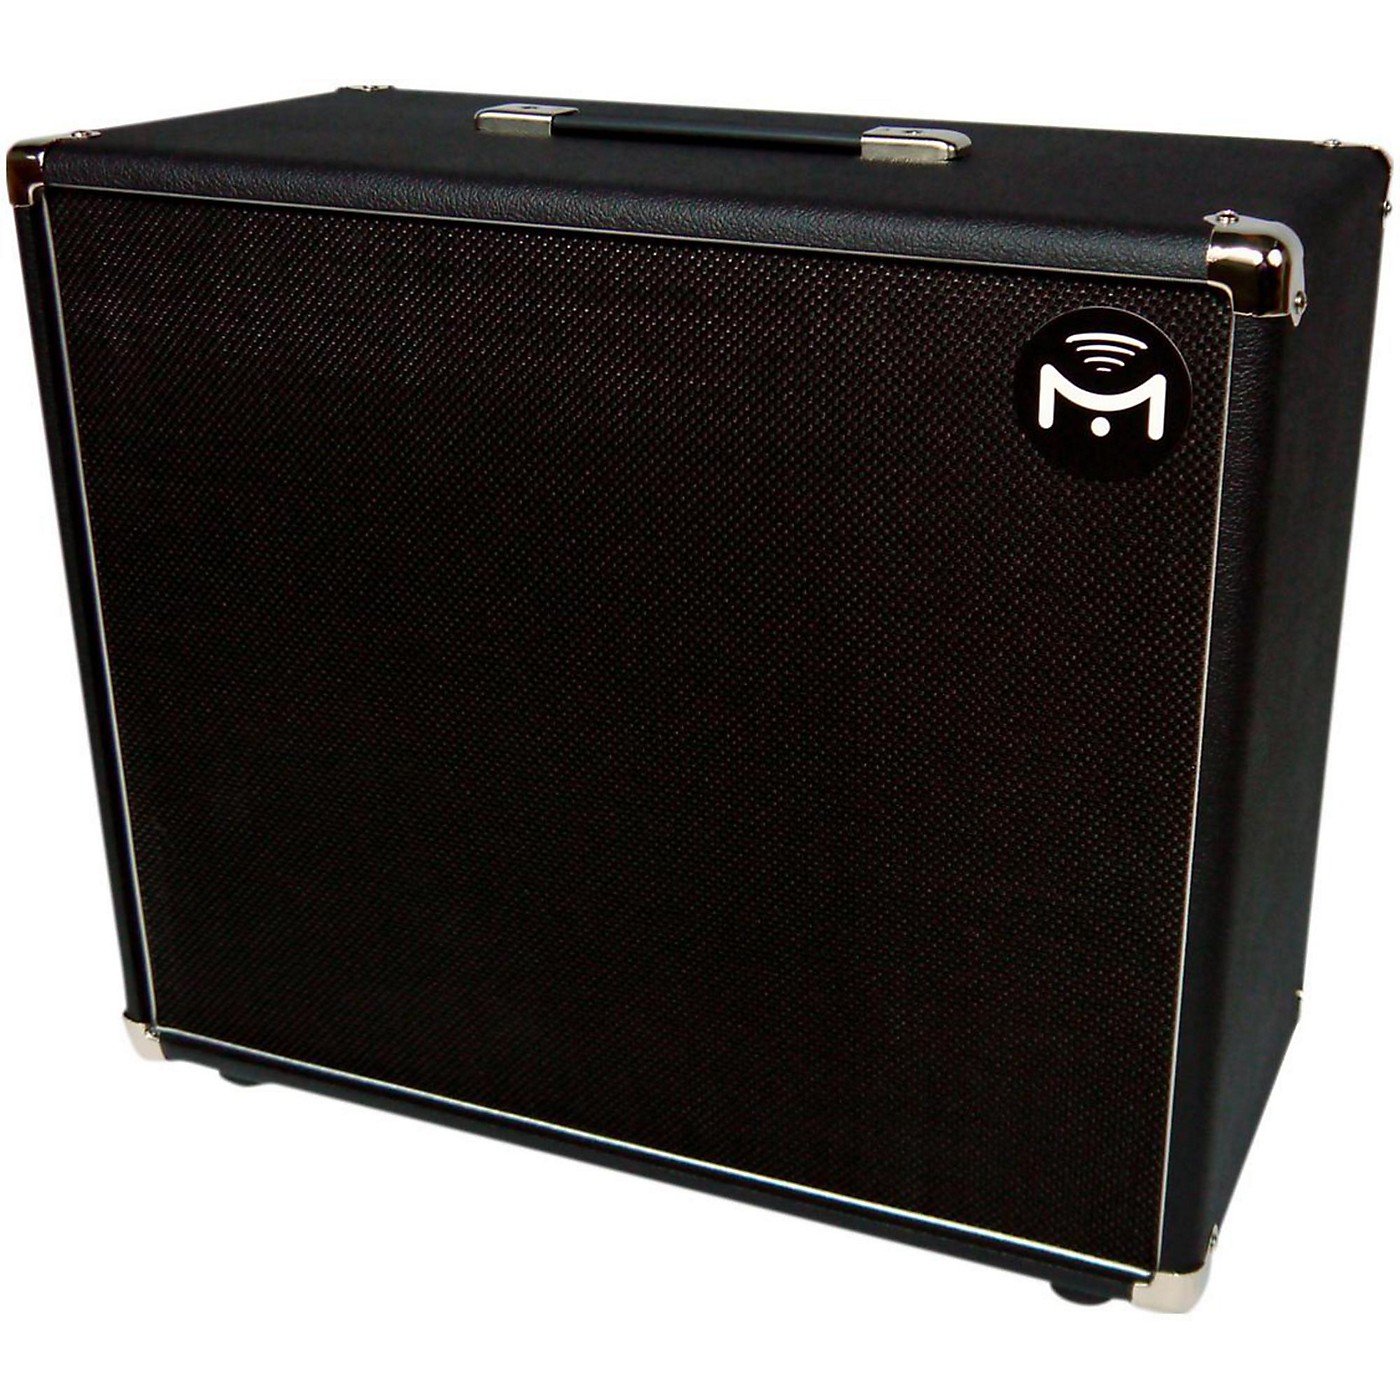 Mission Engineering Gemini GM1-BT 1x12 110W Guitar Cabinet with Bluetooth Interface thumbnail